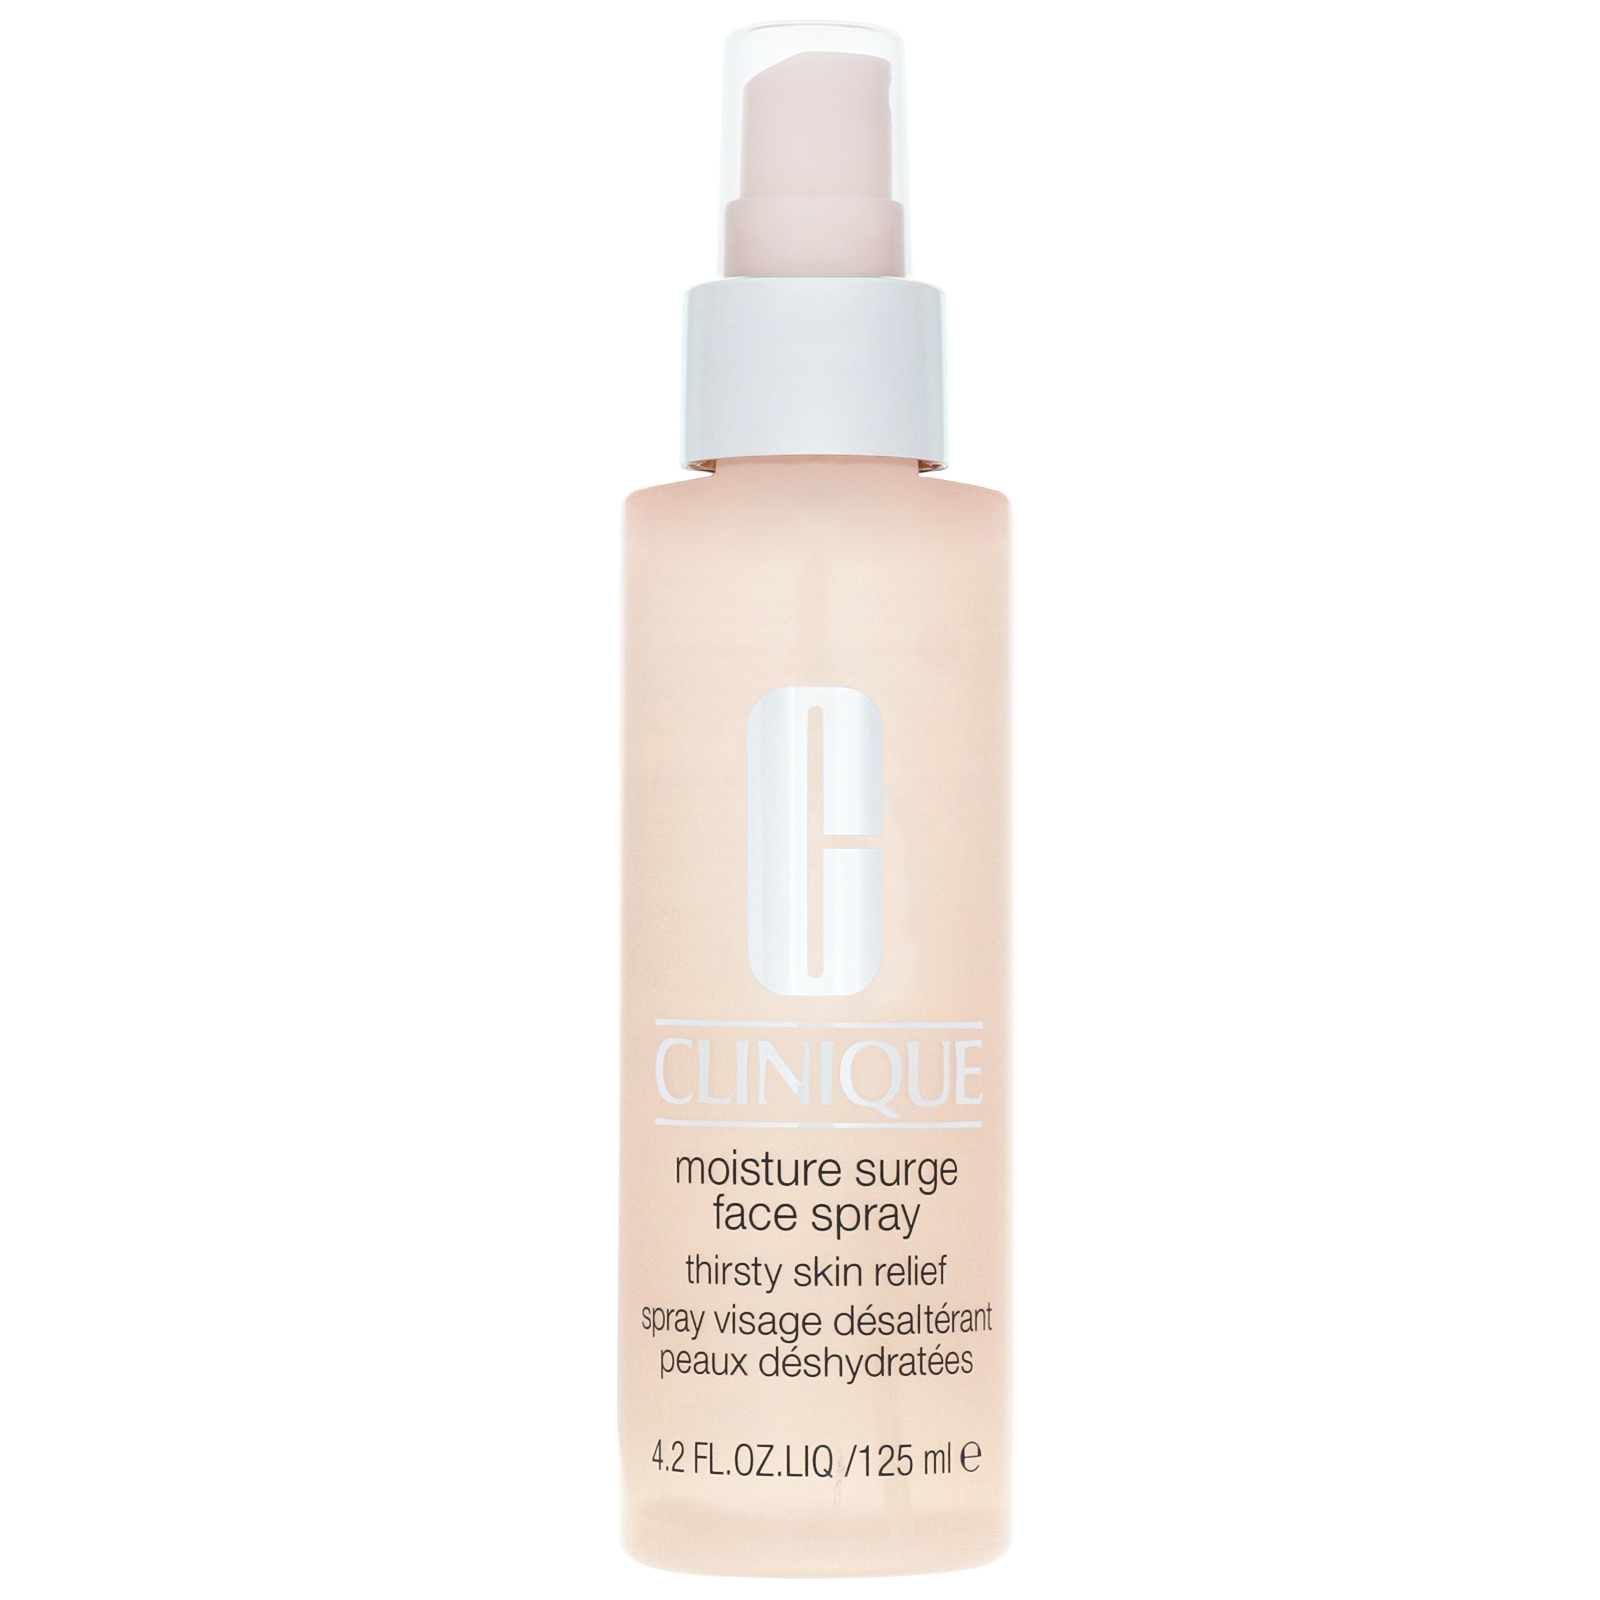 Clinique Moisturisers Moisture Surge Face Spray Thirsty Skin Relief 125ml / 4.2 fl.oz.